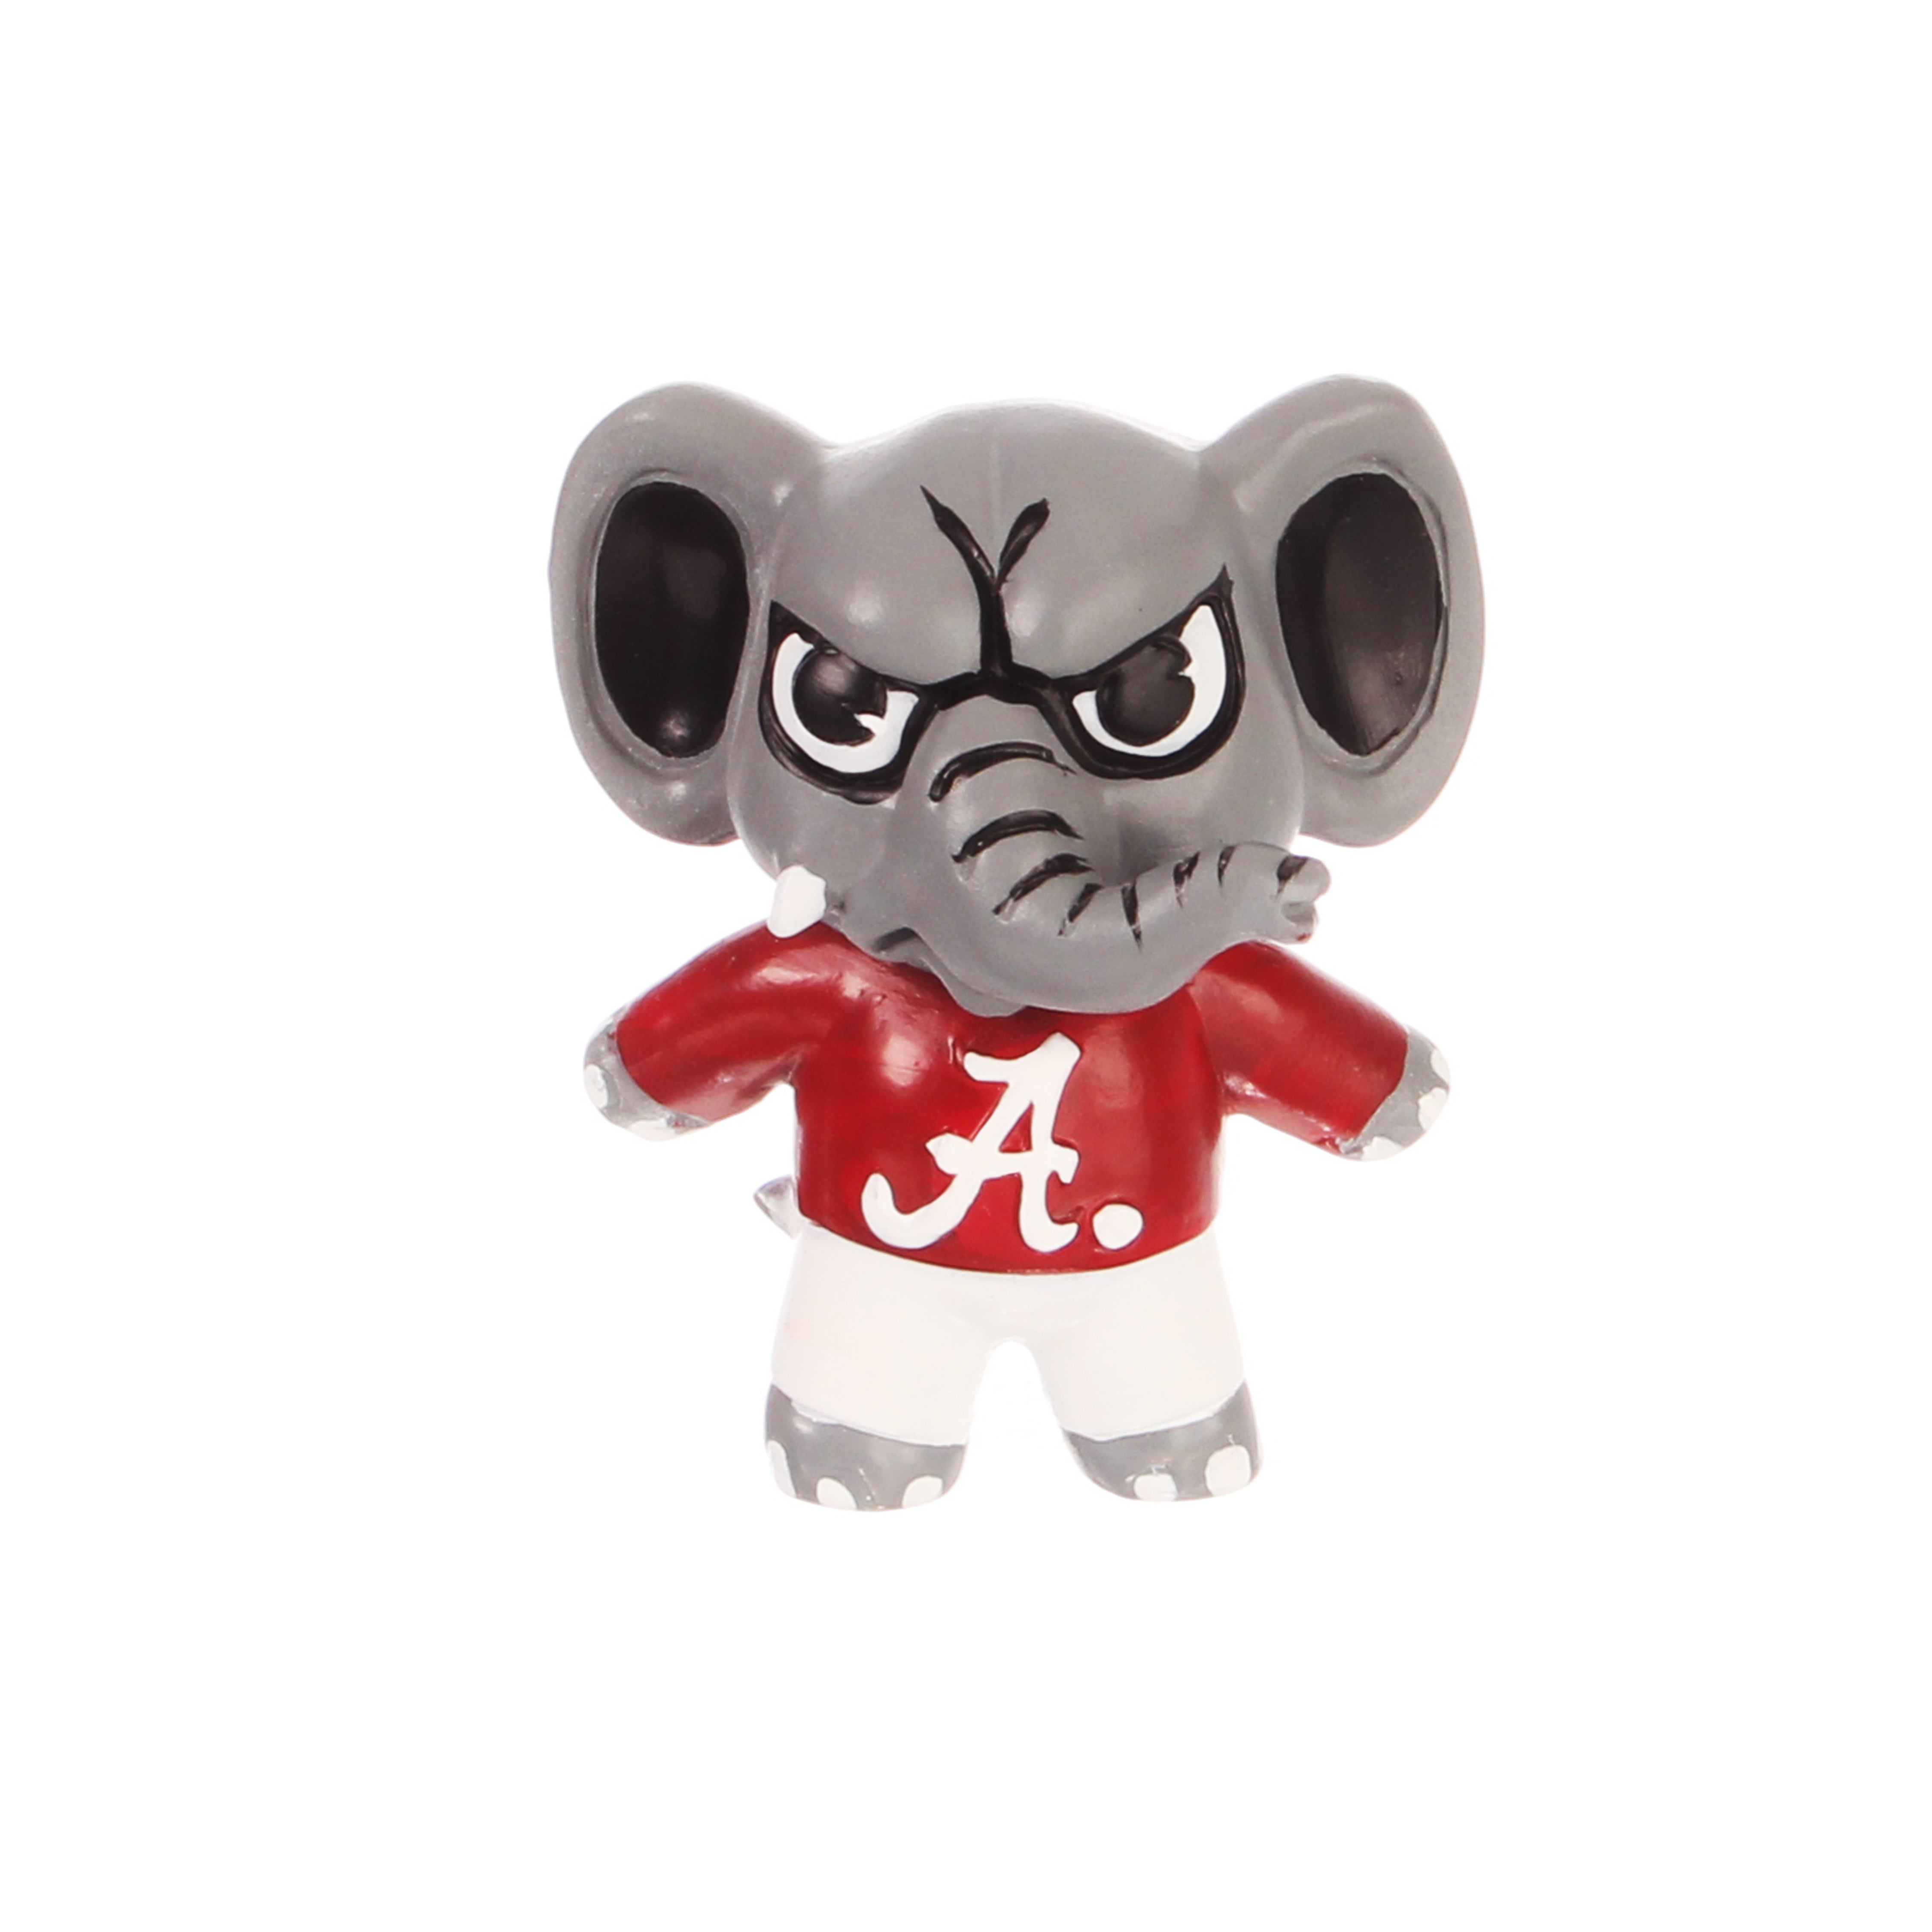 Alabama (Tuscaloosa) Tokyodachi Collectible